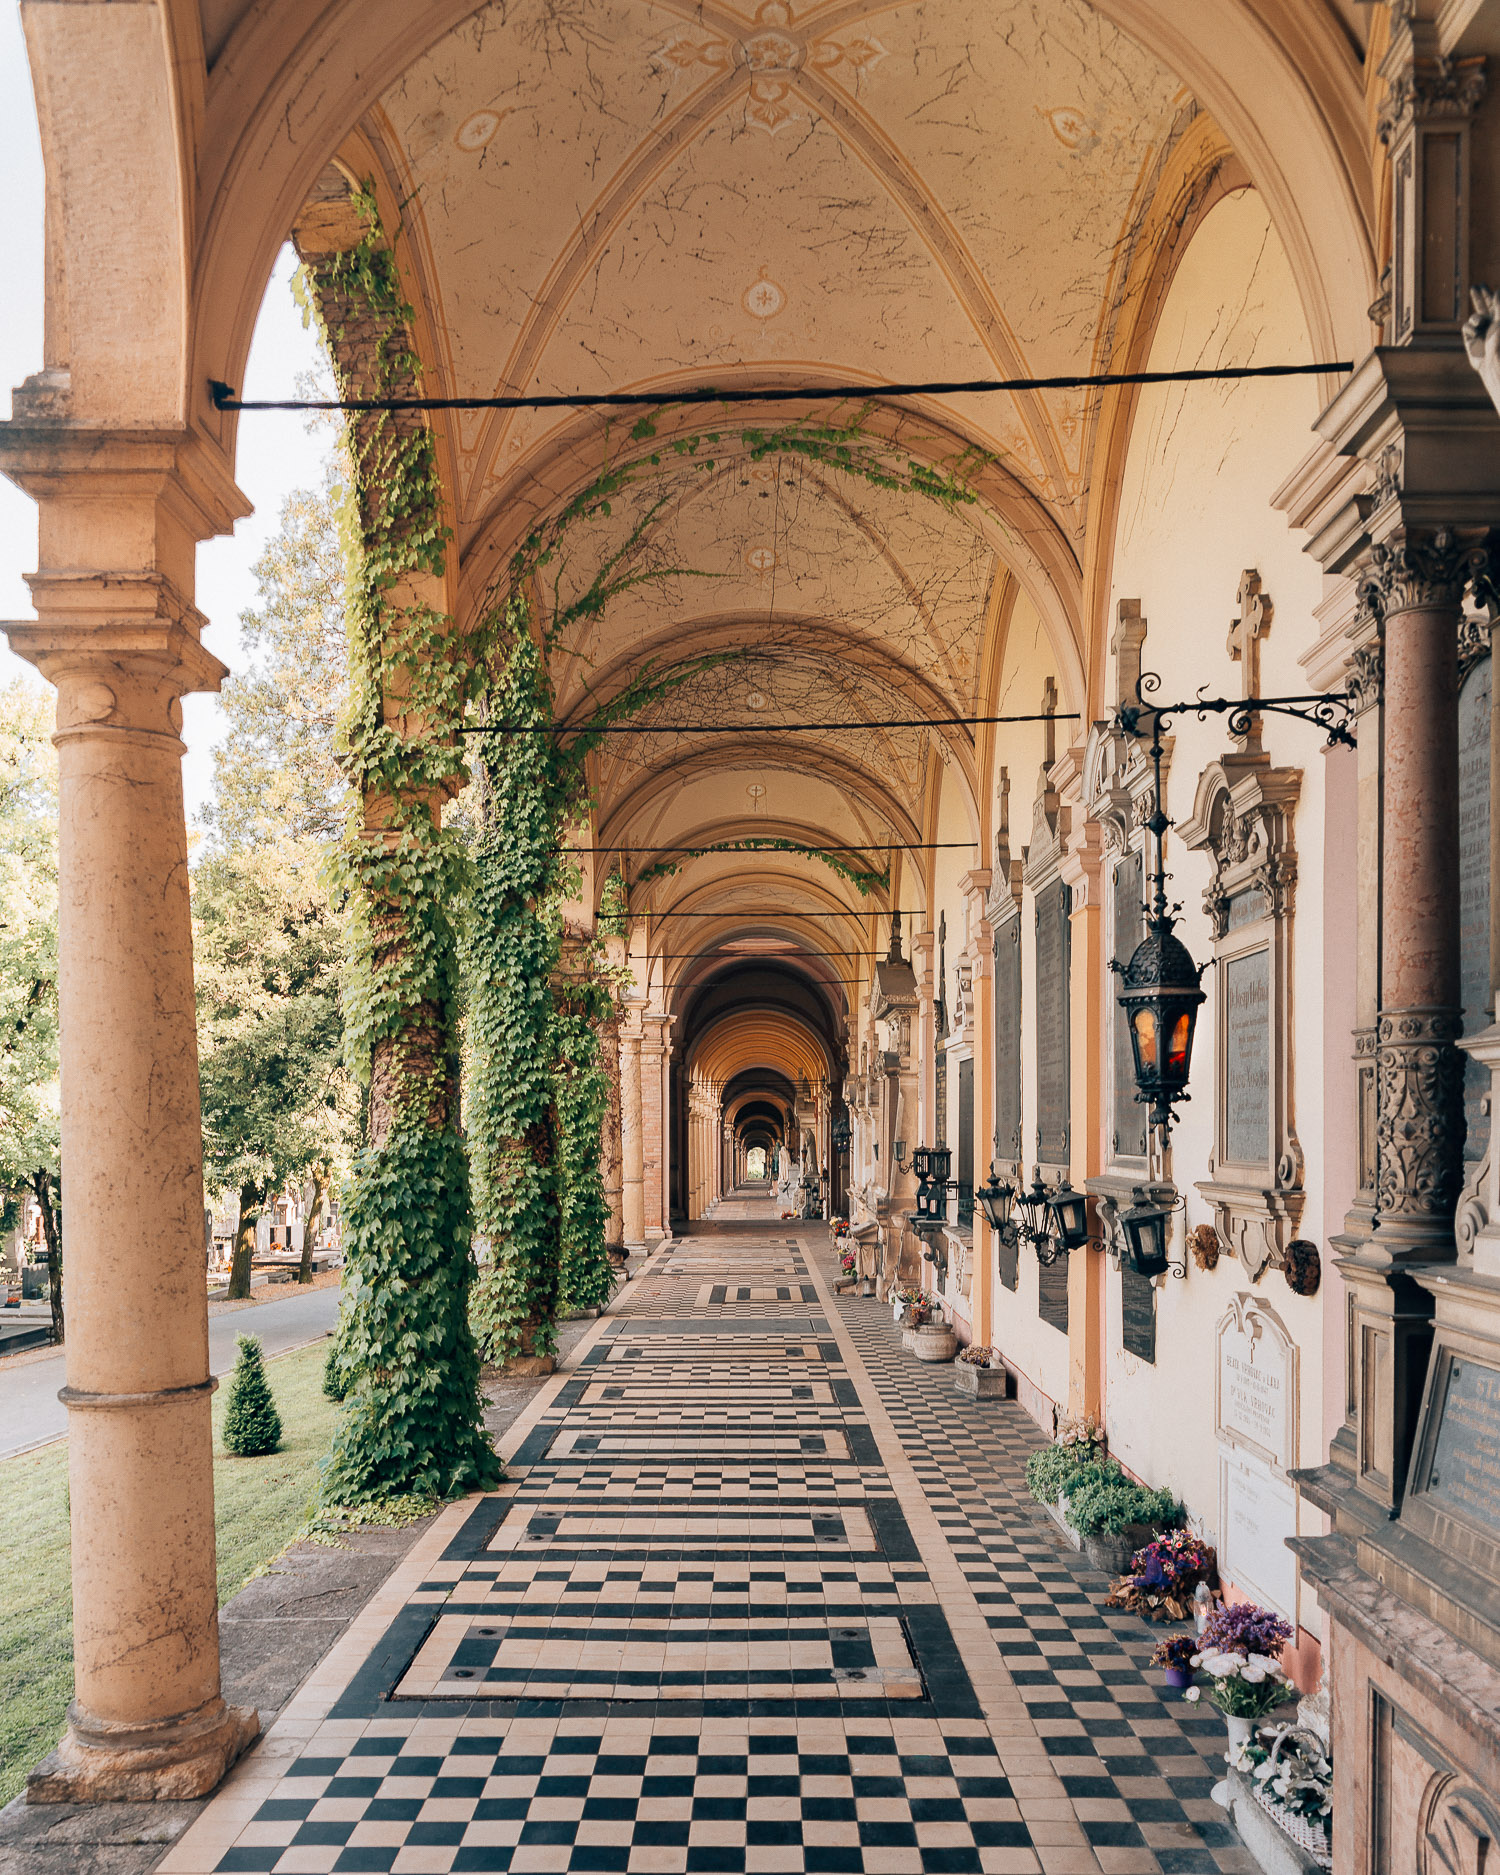 The Mirogoj Cemetery Park in Zagreb